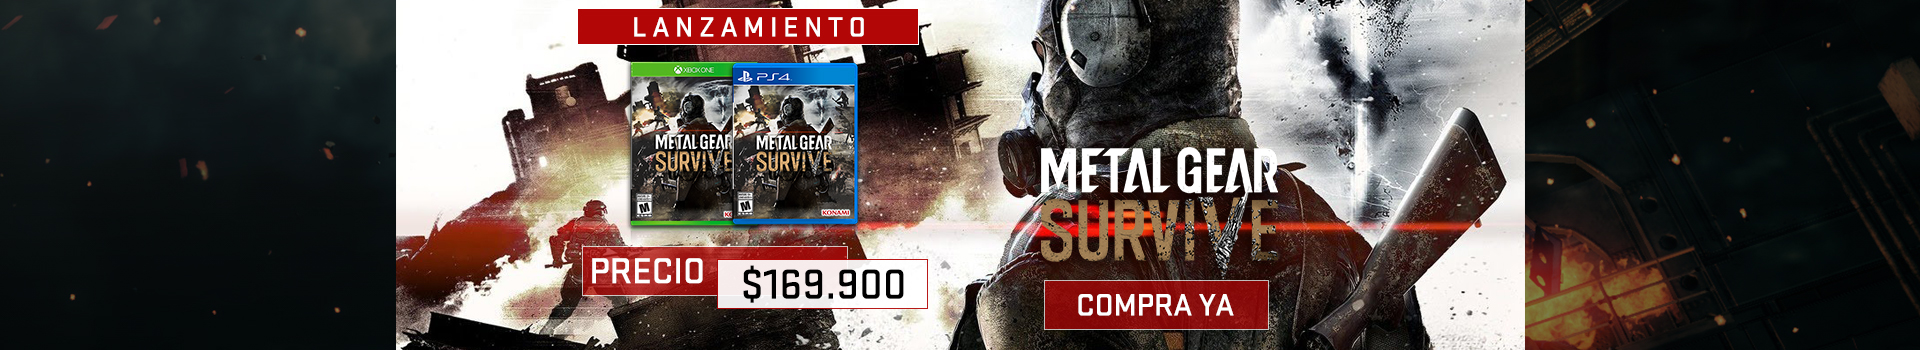 CAT-AK-KT-14-videojuegos-metal-gear-survive-cat-marzo14/may1